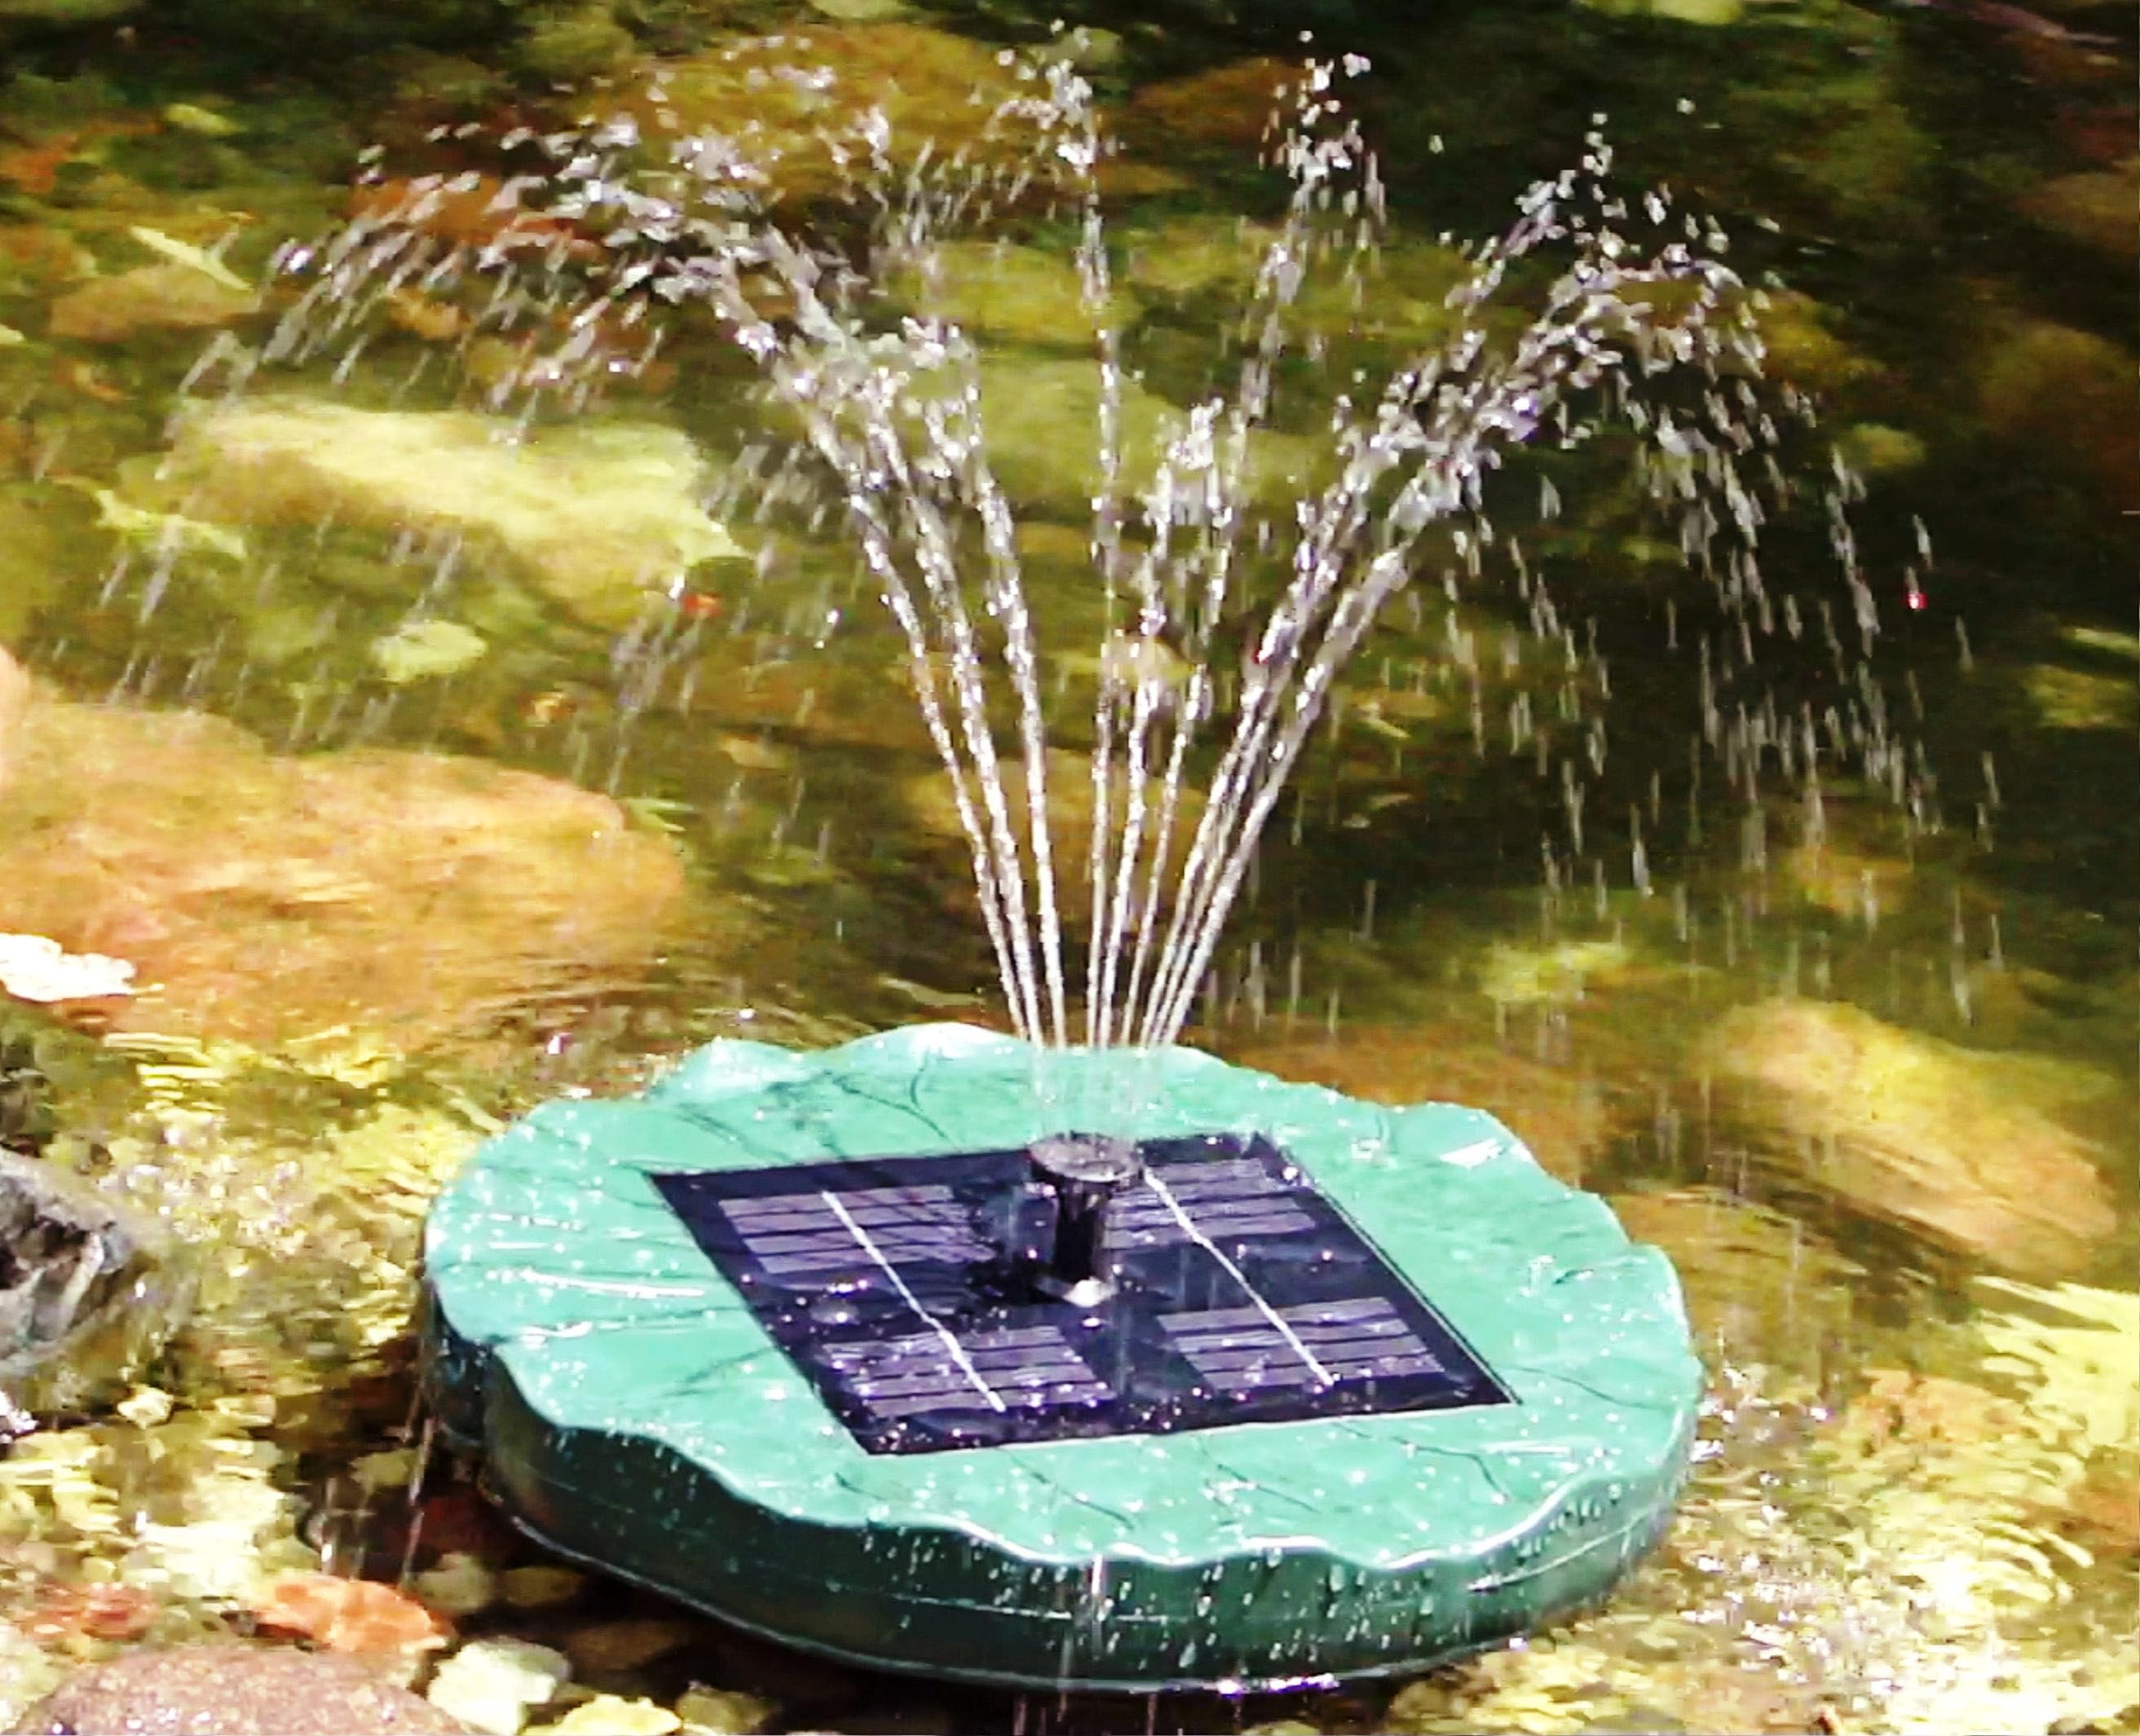 Solar powered pond fountain fountain design ideas for Pond with fountain